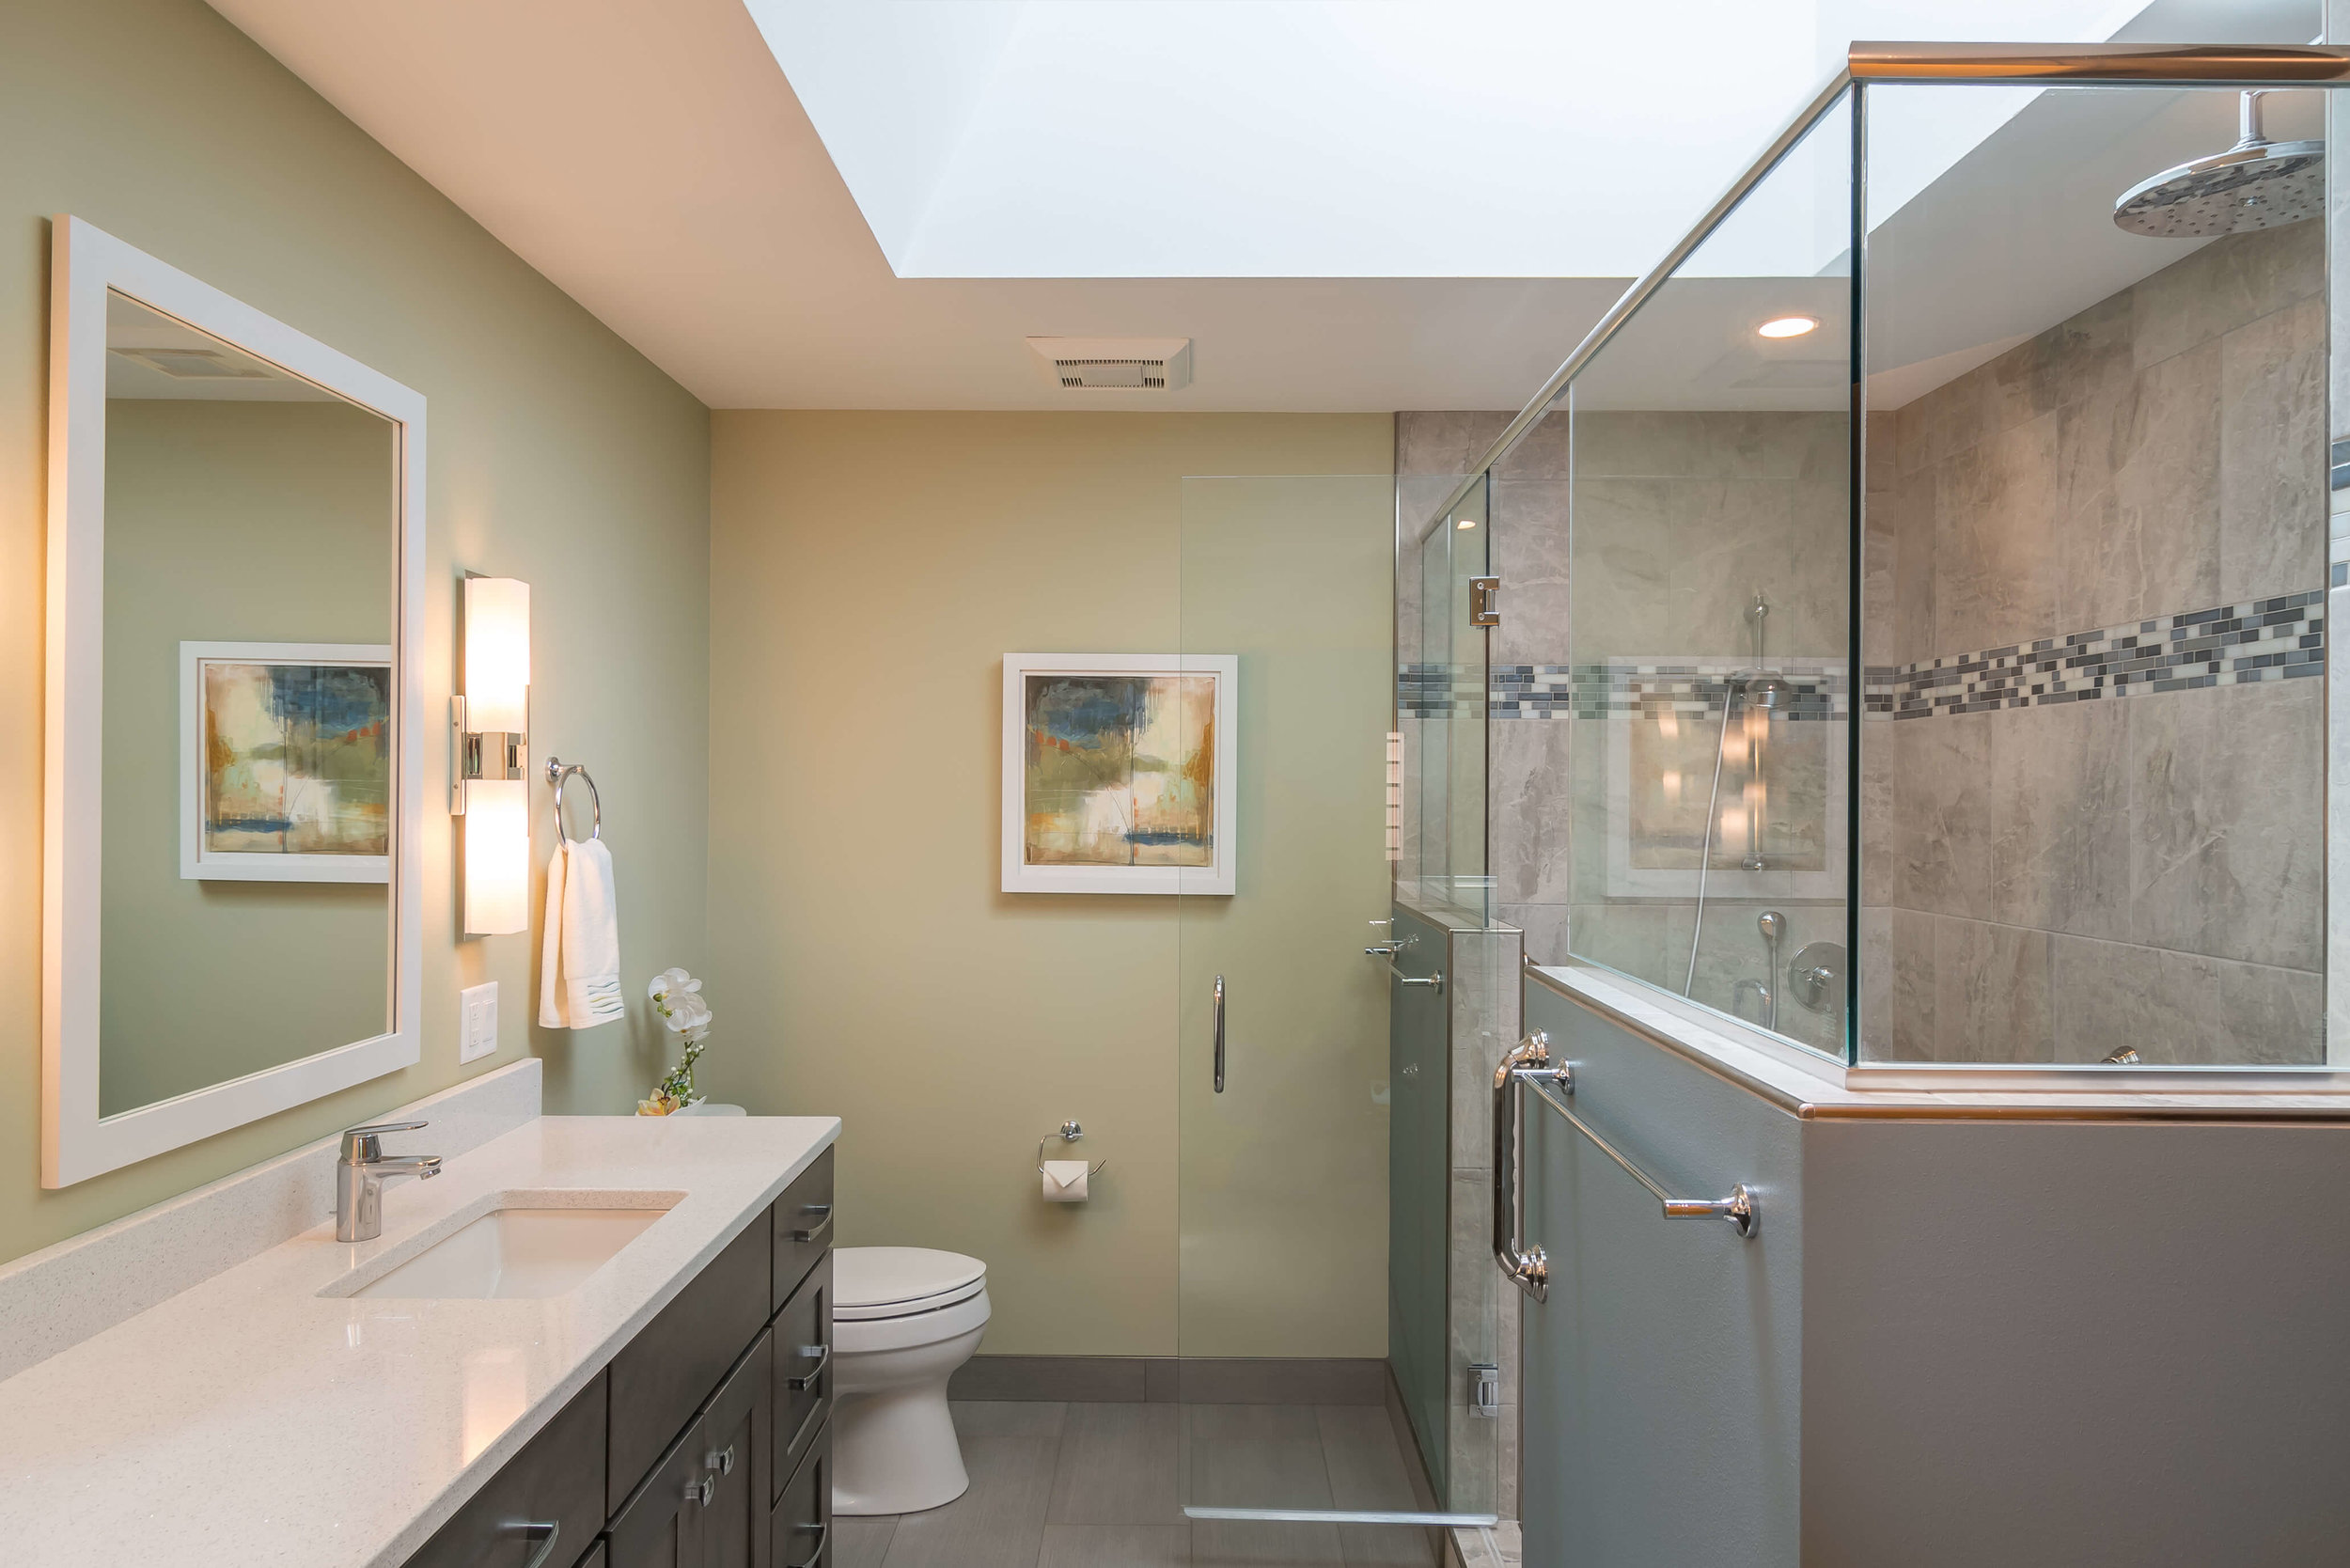 bathroom-master-suite-double-sink-remodel-Madison-Wisconsin-4.jpg